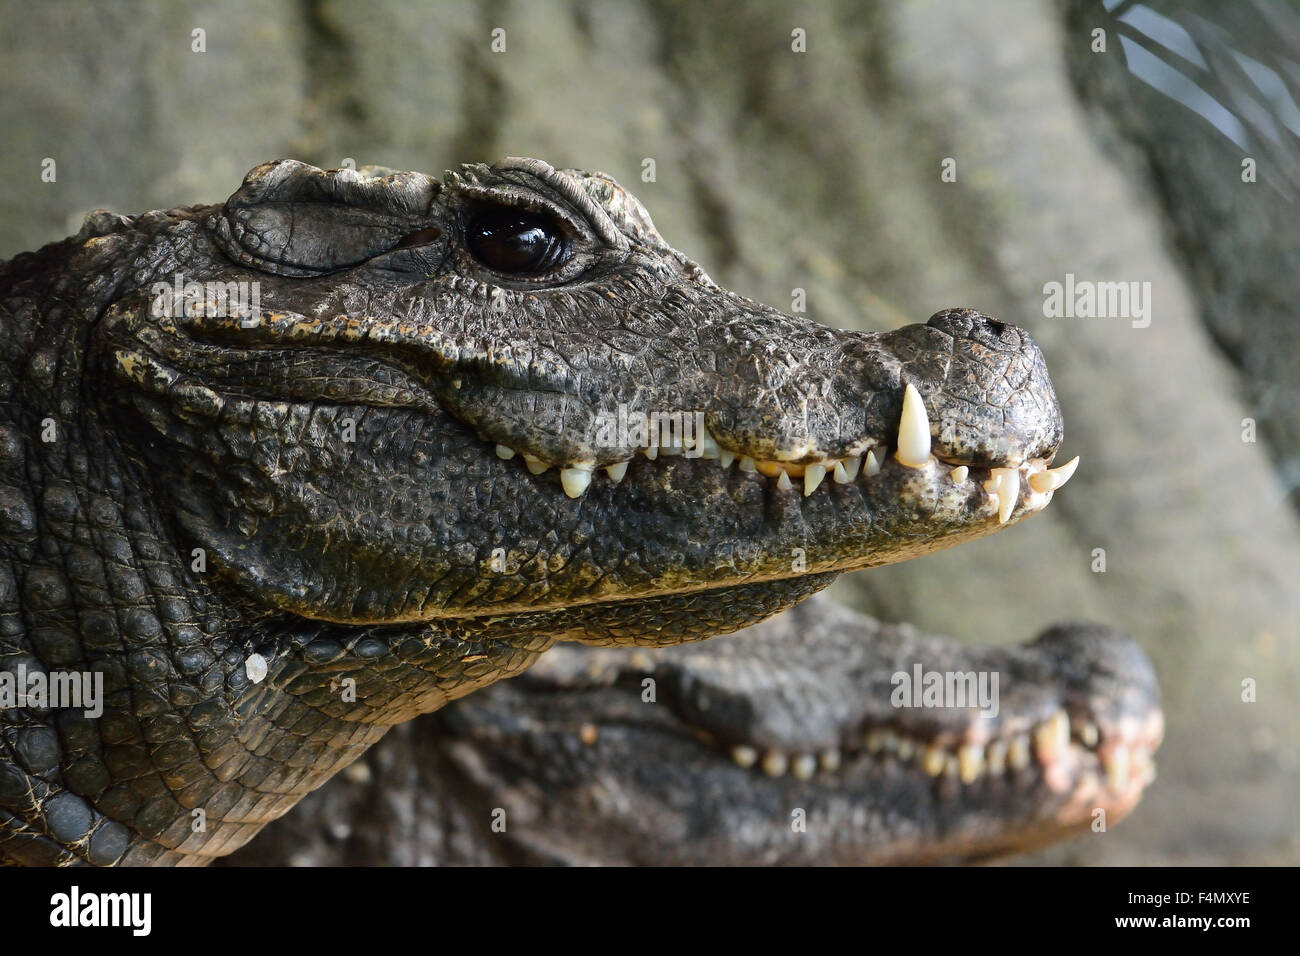 dwarf-crocodile-at-whipsnade-zoo-in-bedf